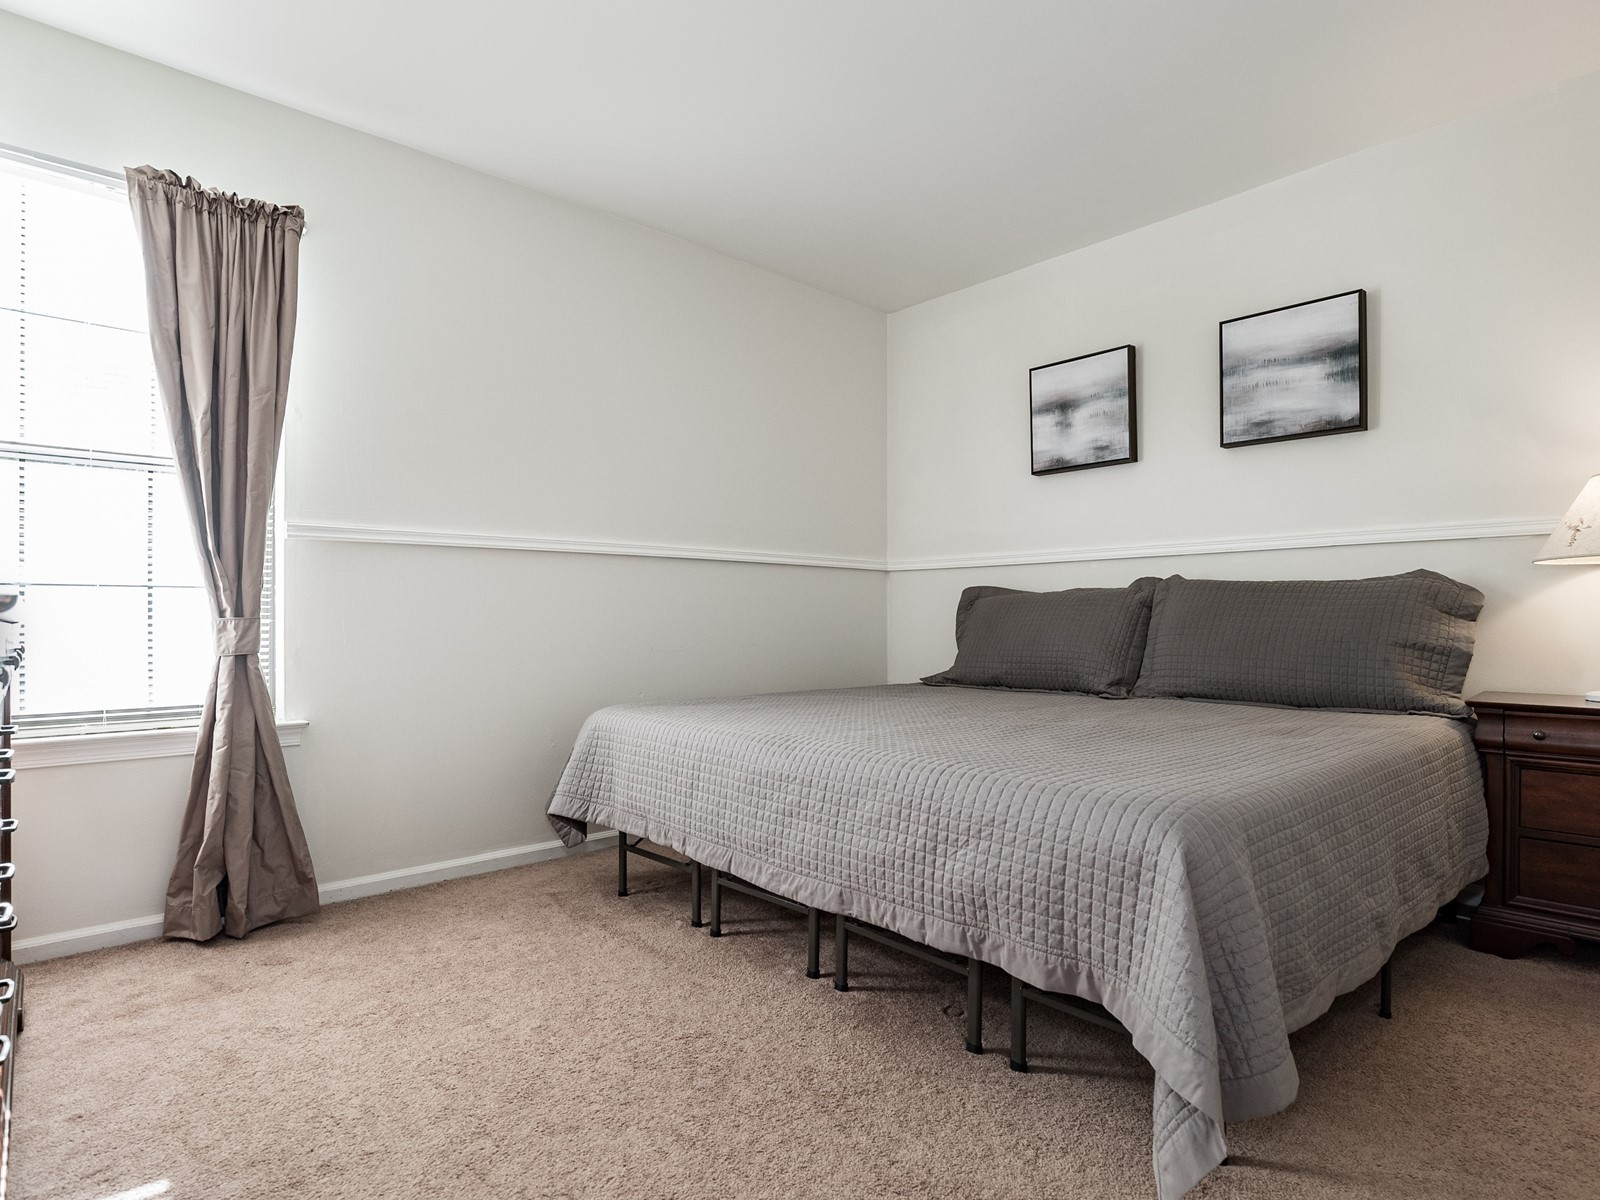 Woodbridge 404 Furnished Apartment master bedroom with king sized bed and dresser